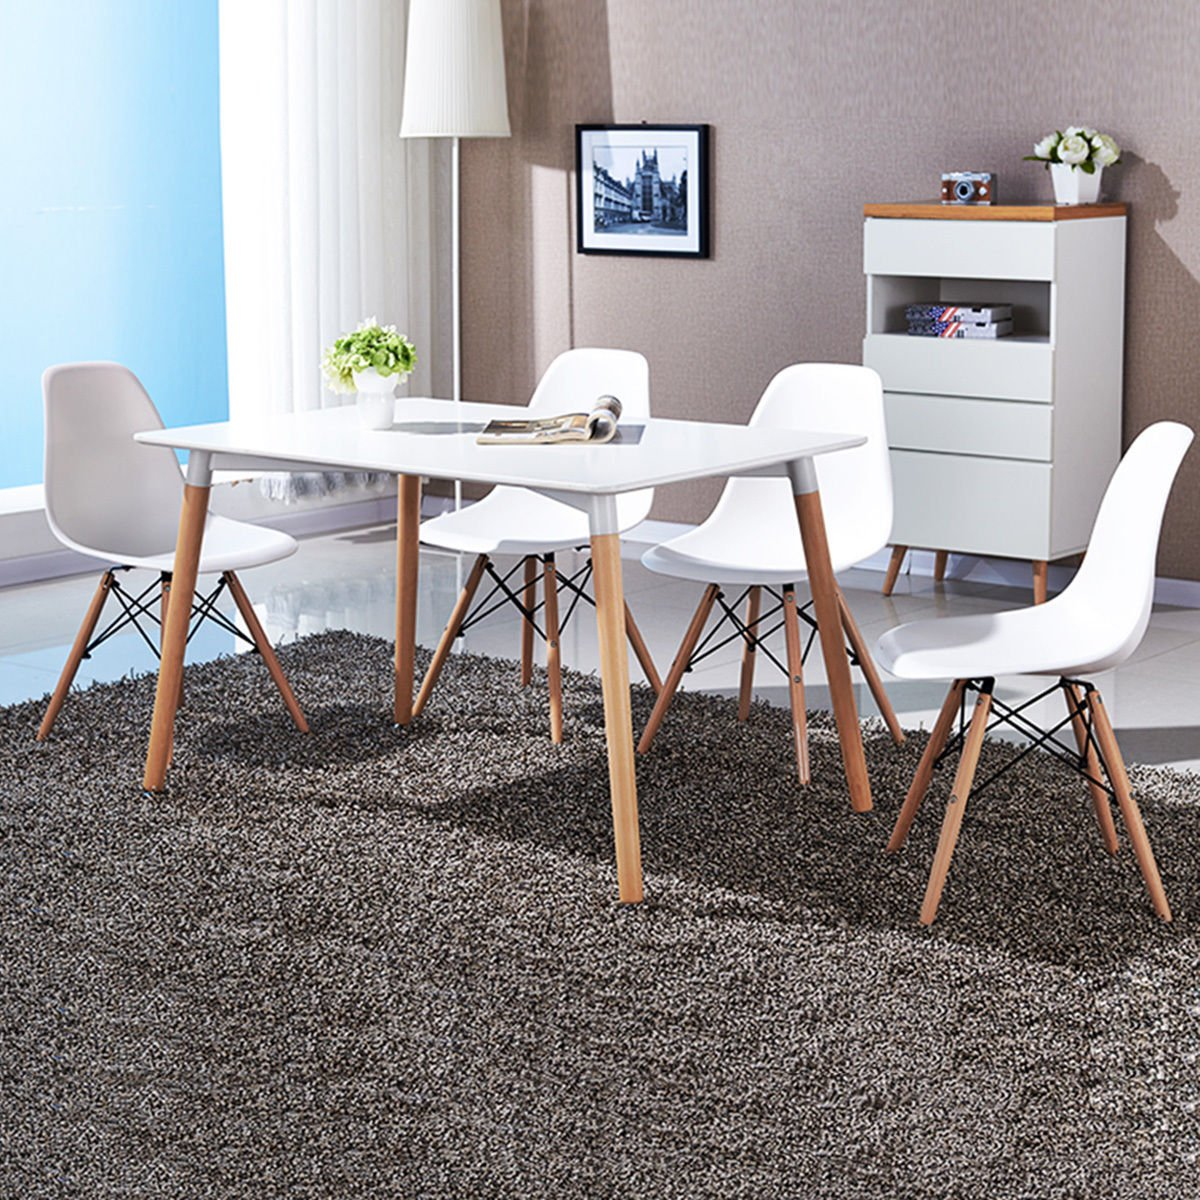 chairs and tables for home review